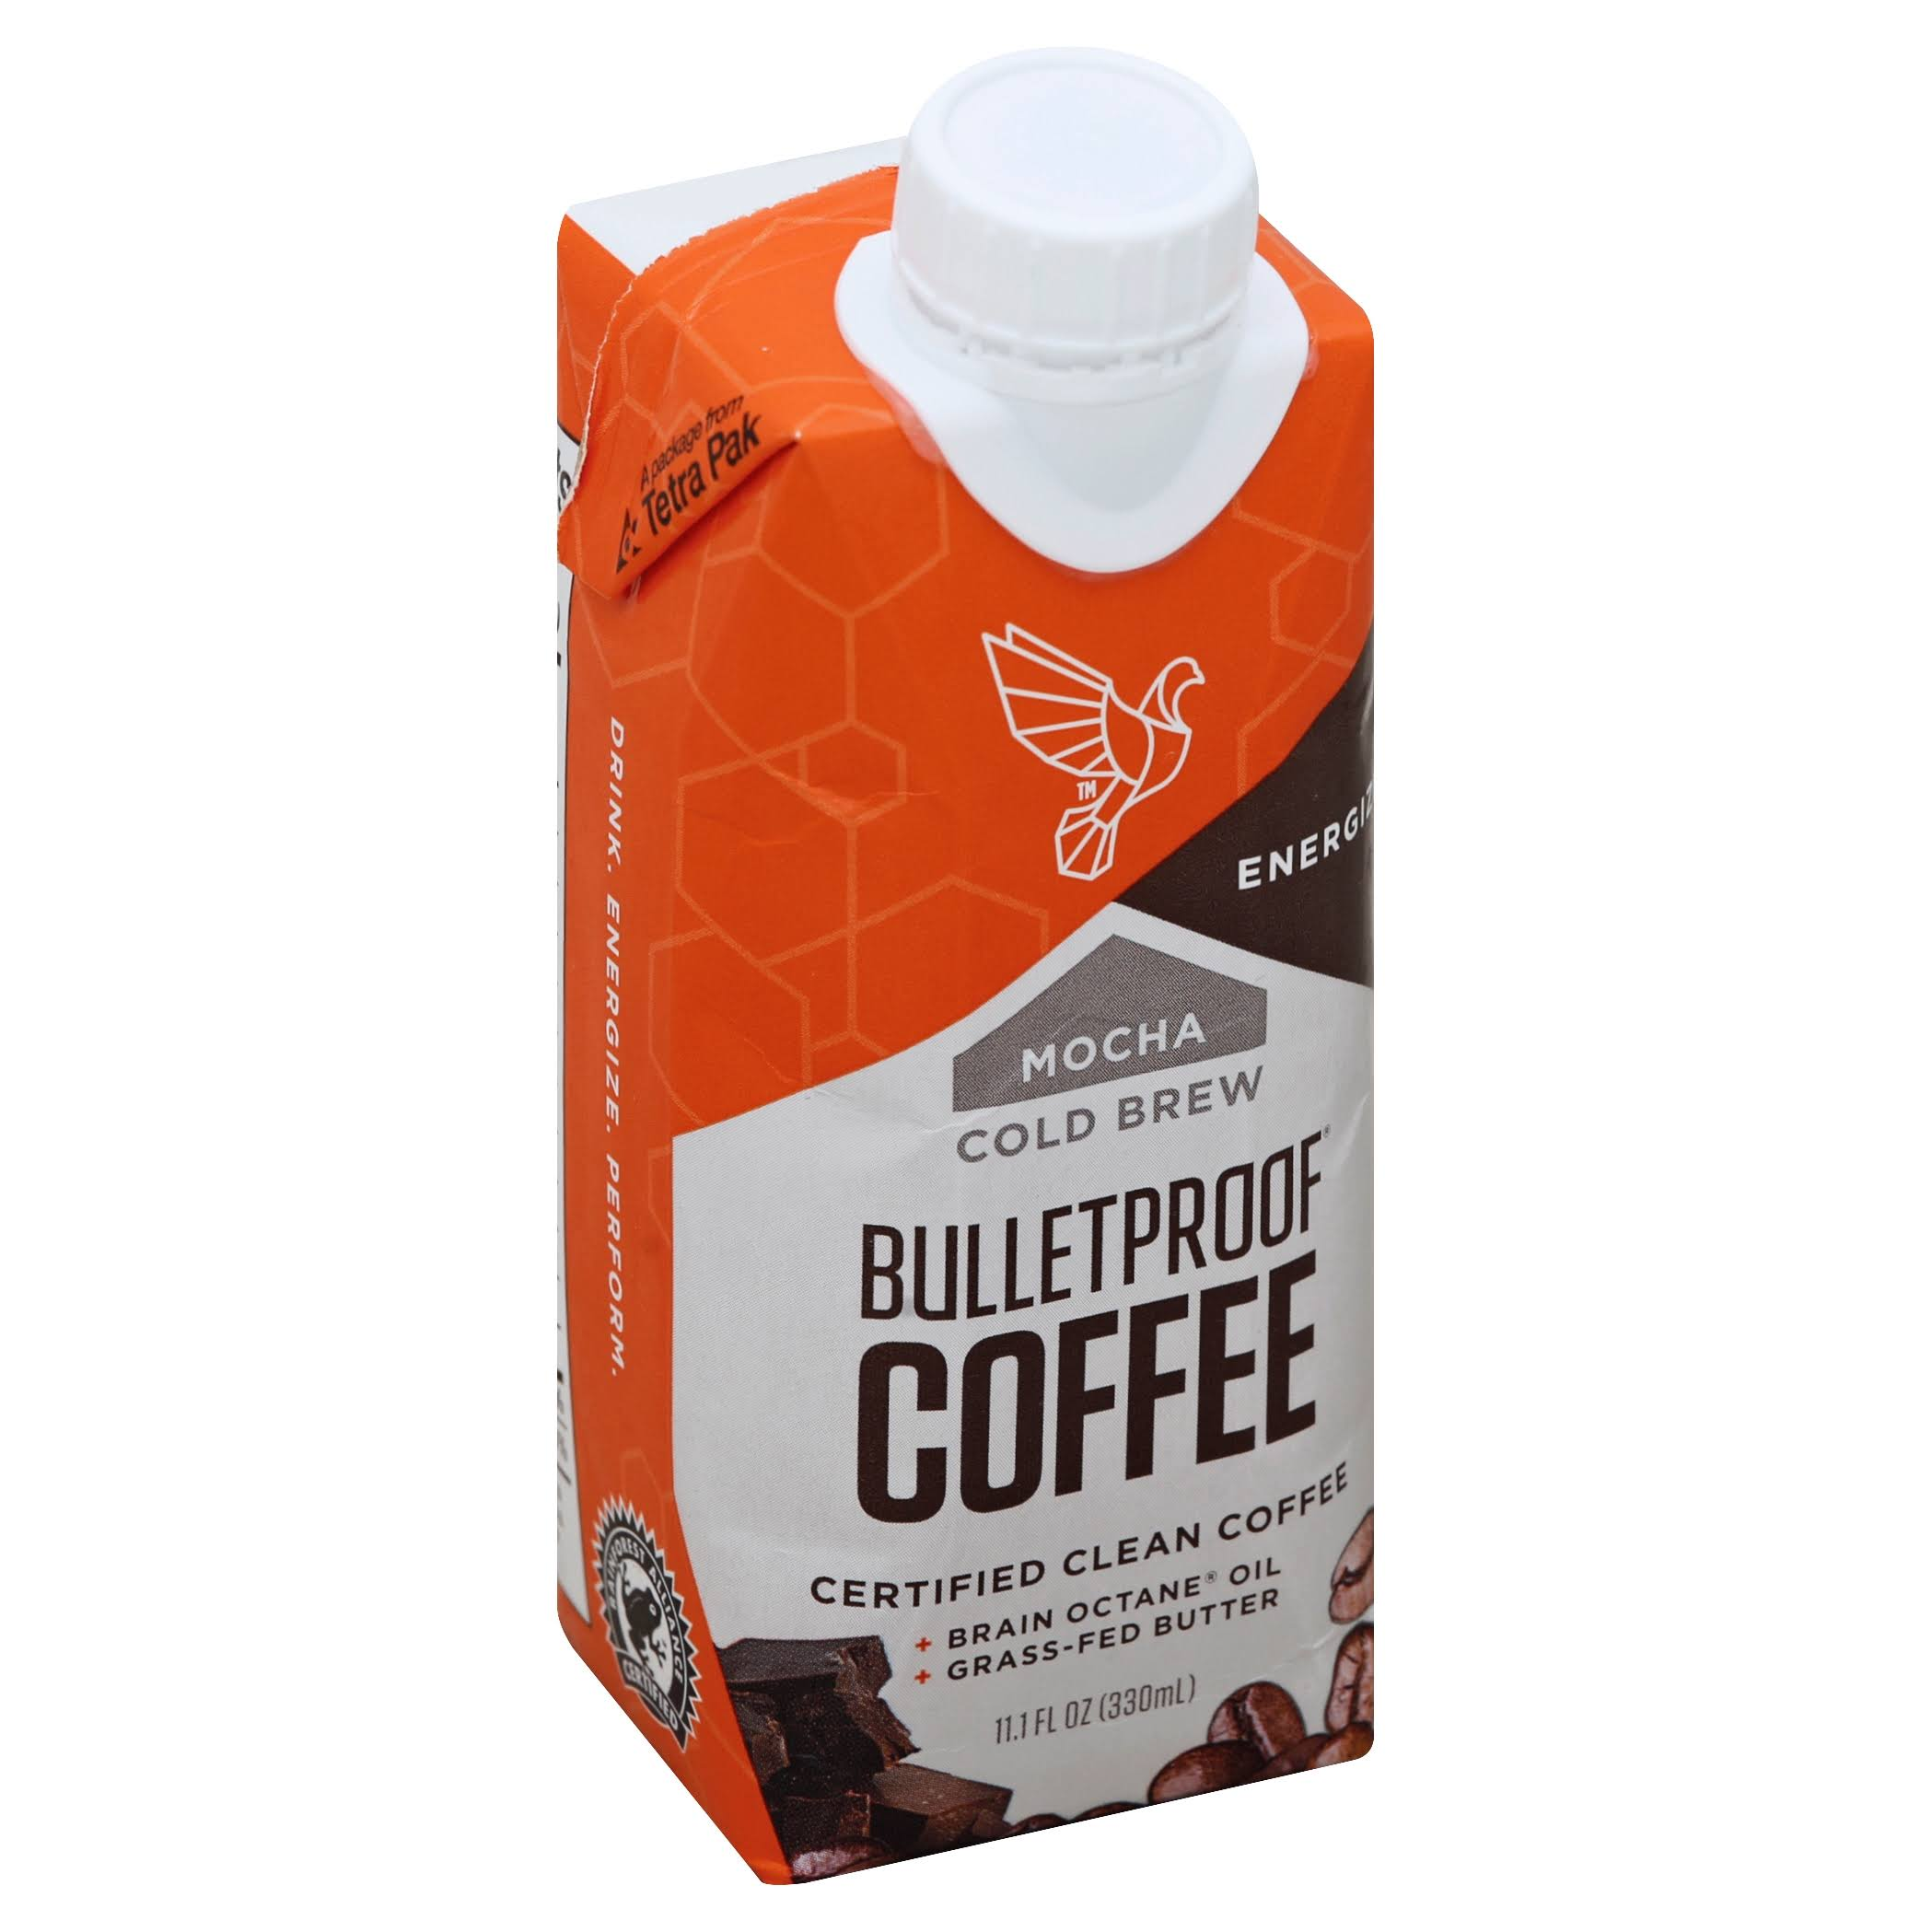 Bulletproof Coffee, Cold Brew, Mocha - 11.1 fl oz